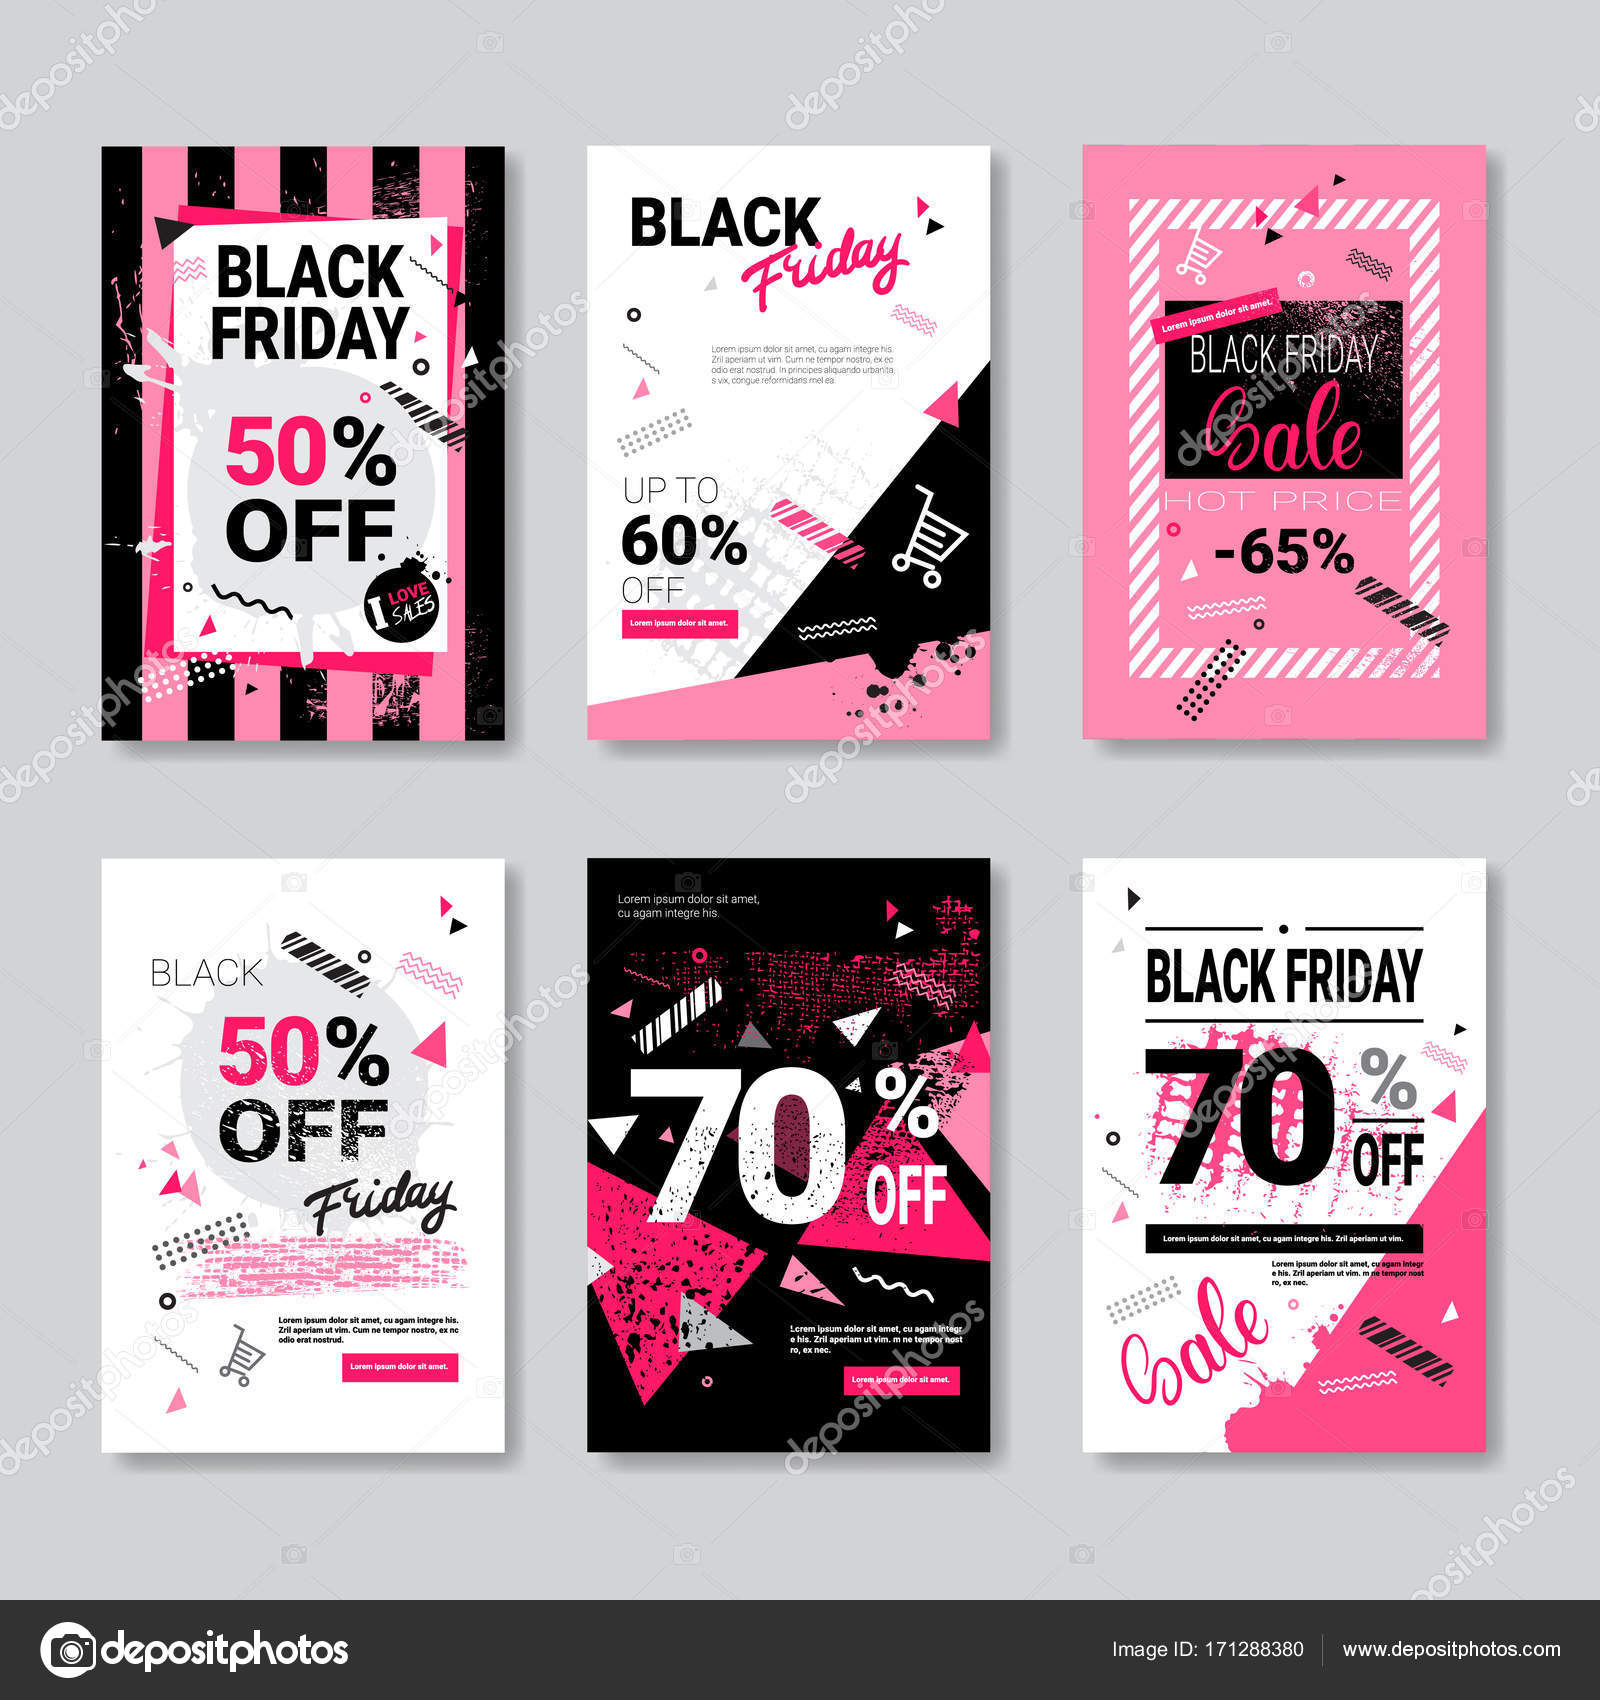 Discount Posters Design